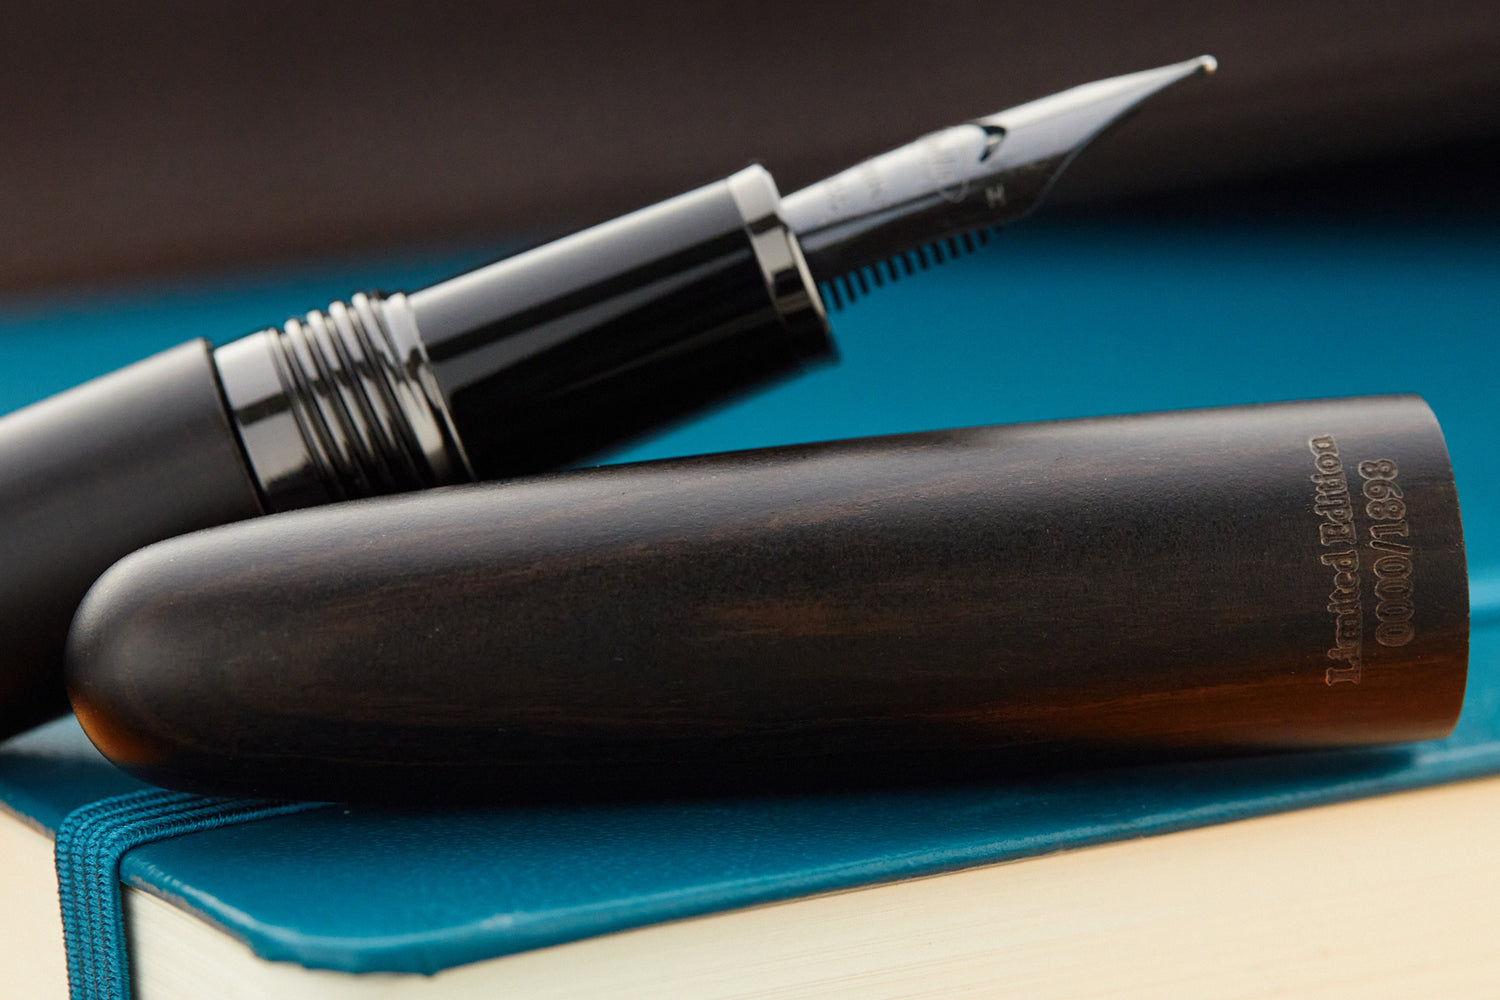 Conklin All American Fountain Pen - Ebony Wood/Gunmetal (Limited Edition)